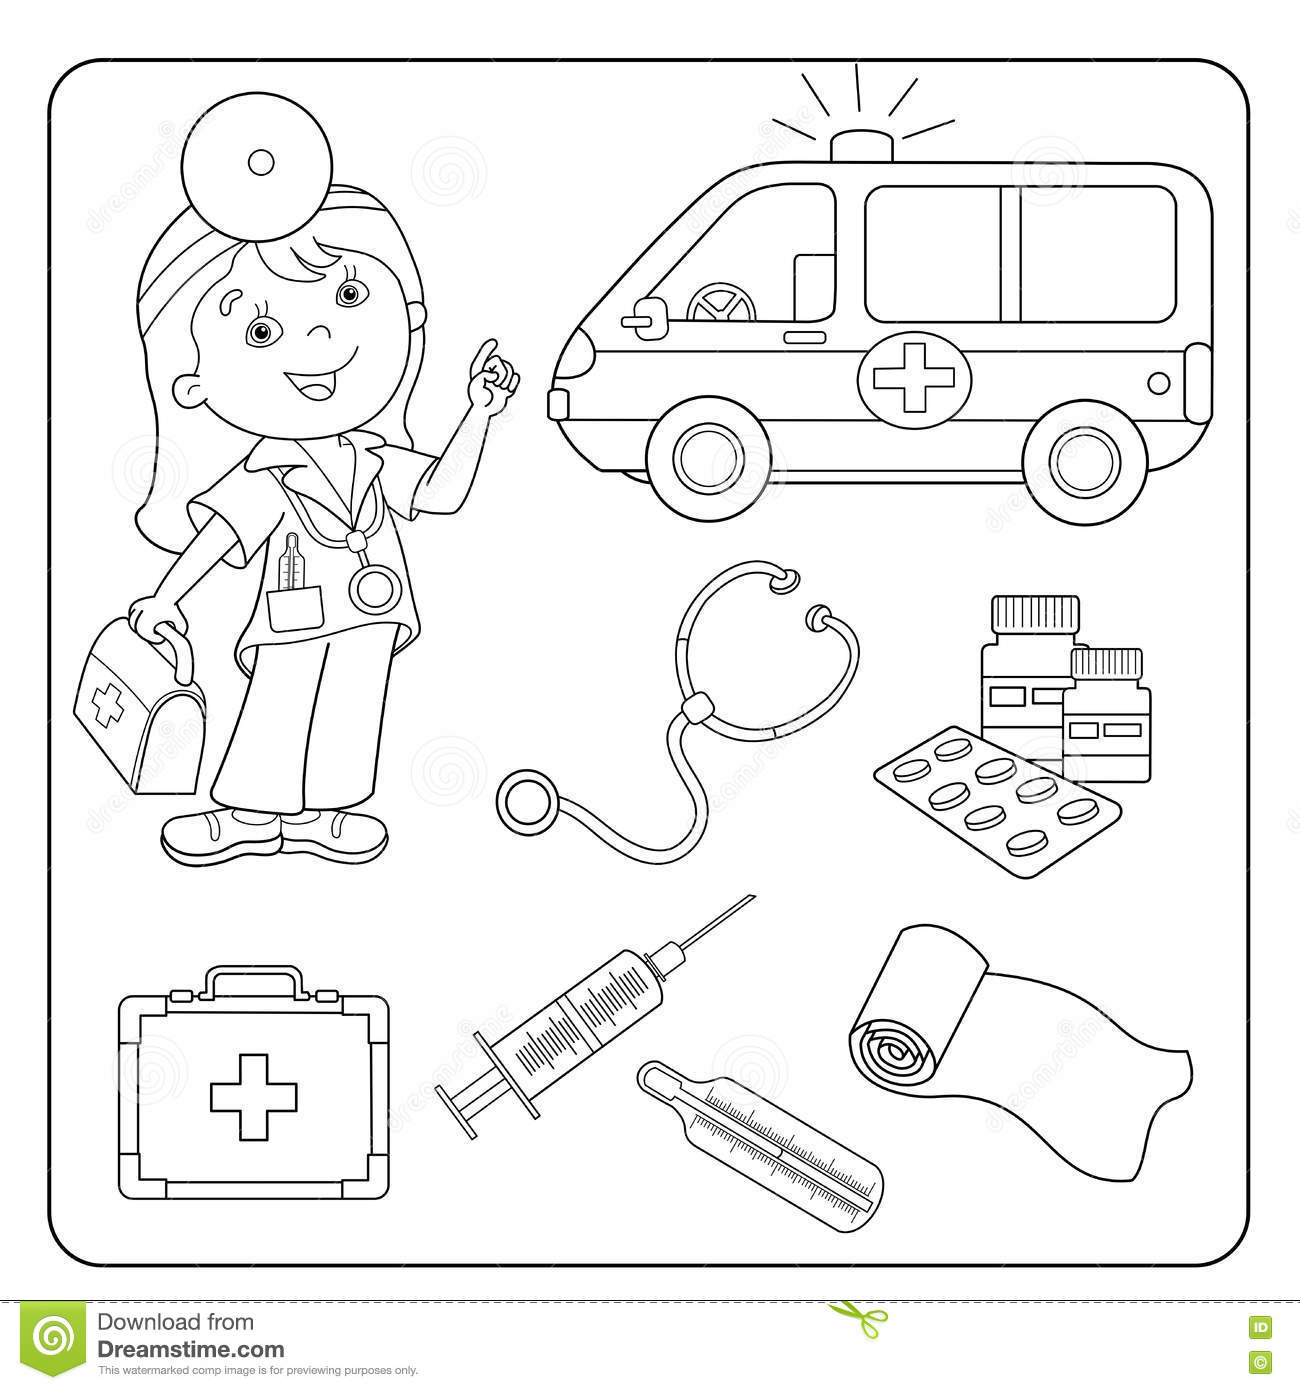 coloring page outline of doctor set of medical instruments stock